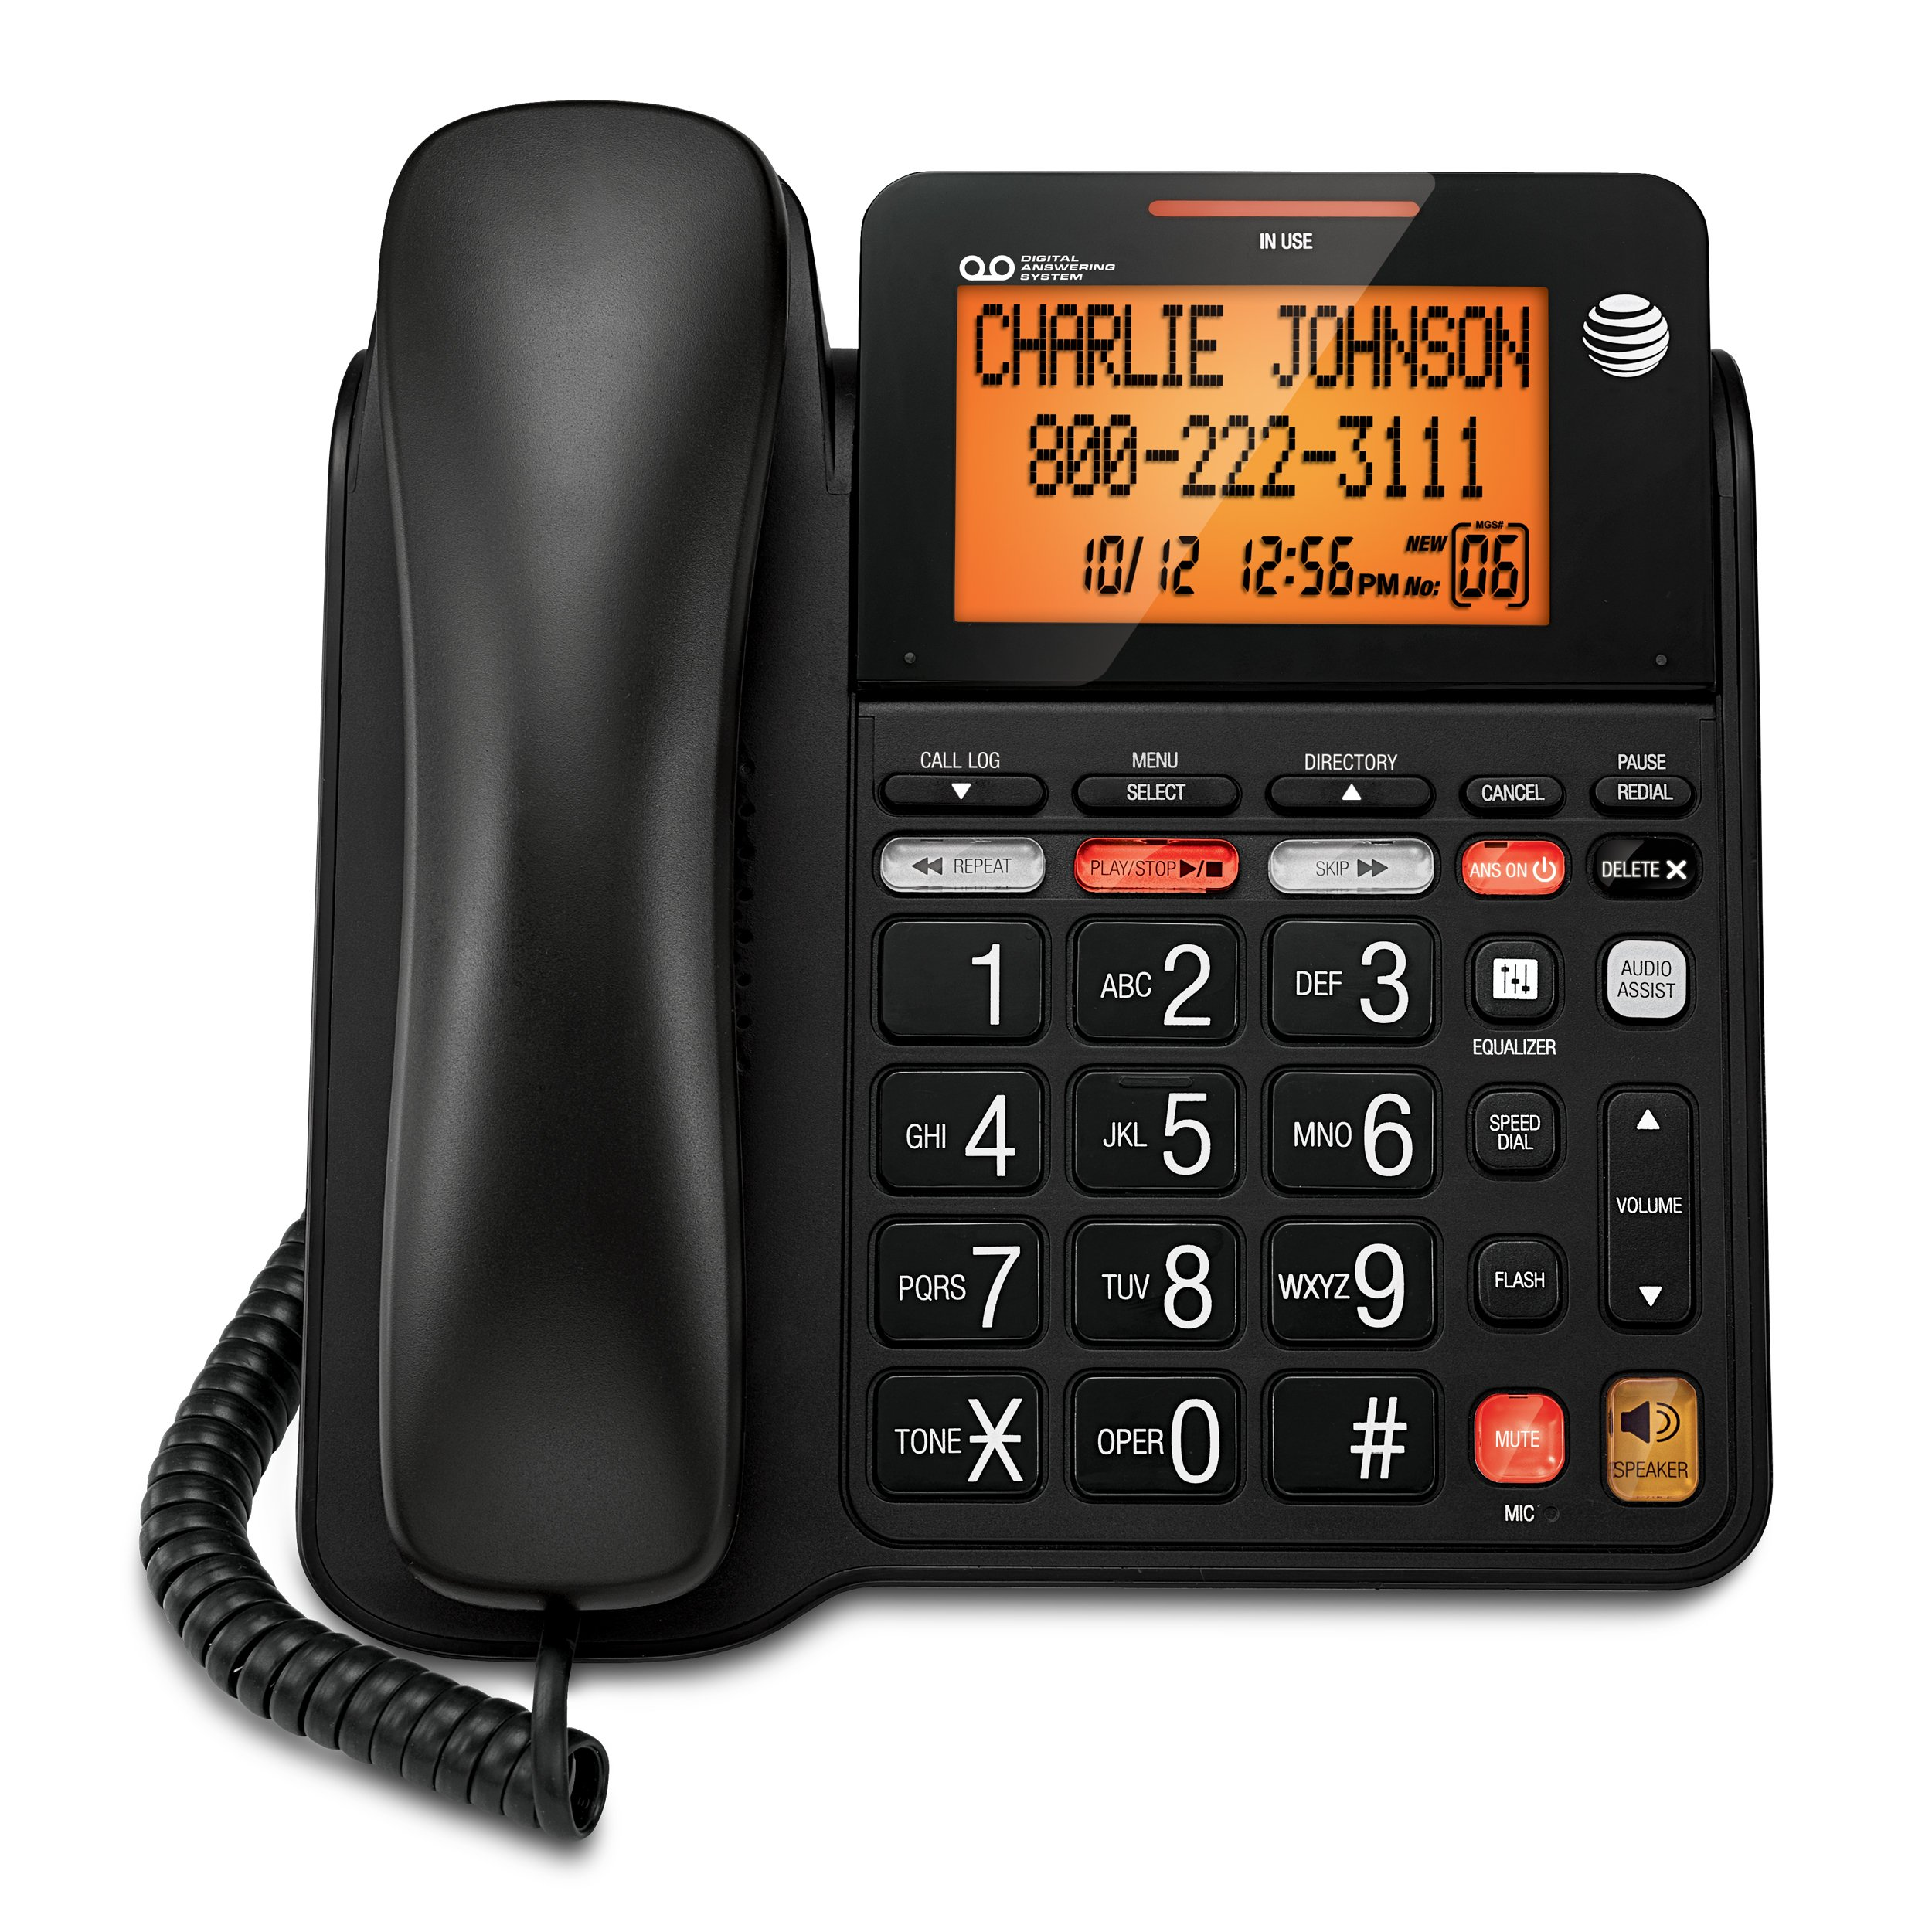 AT&T CD4930 Corded Phone with Answering System and Caller ID, Black